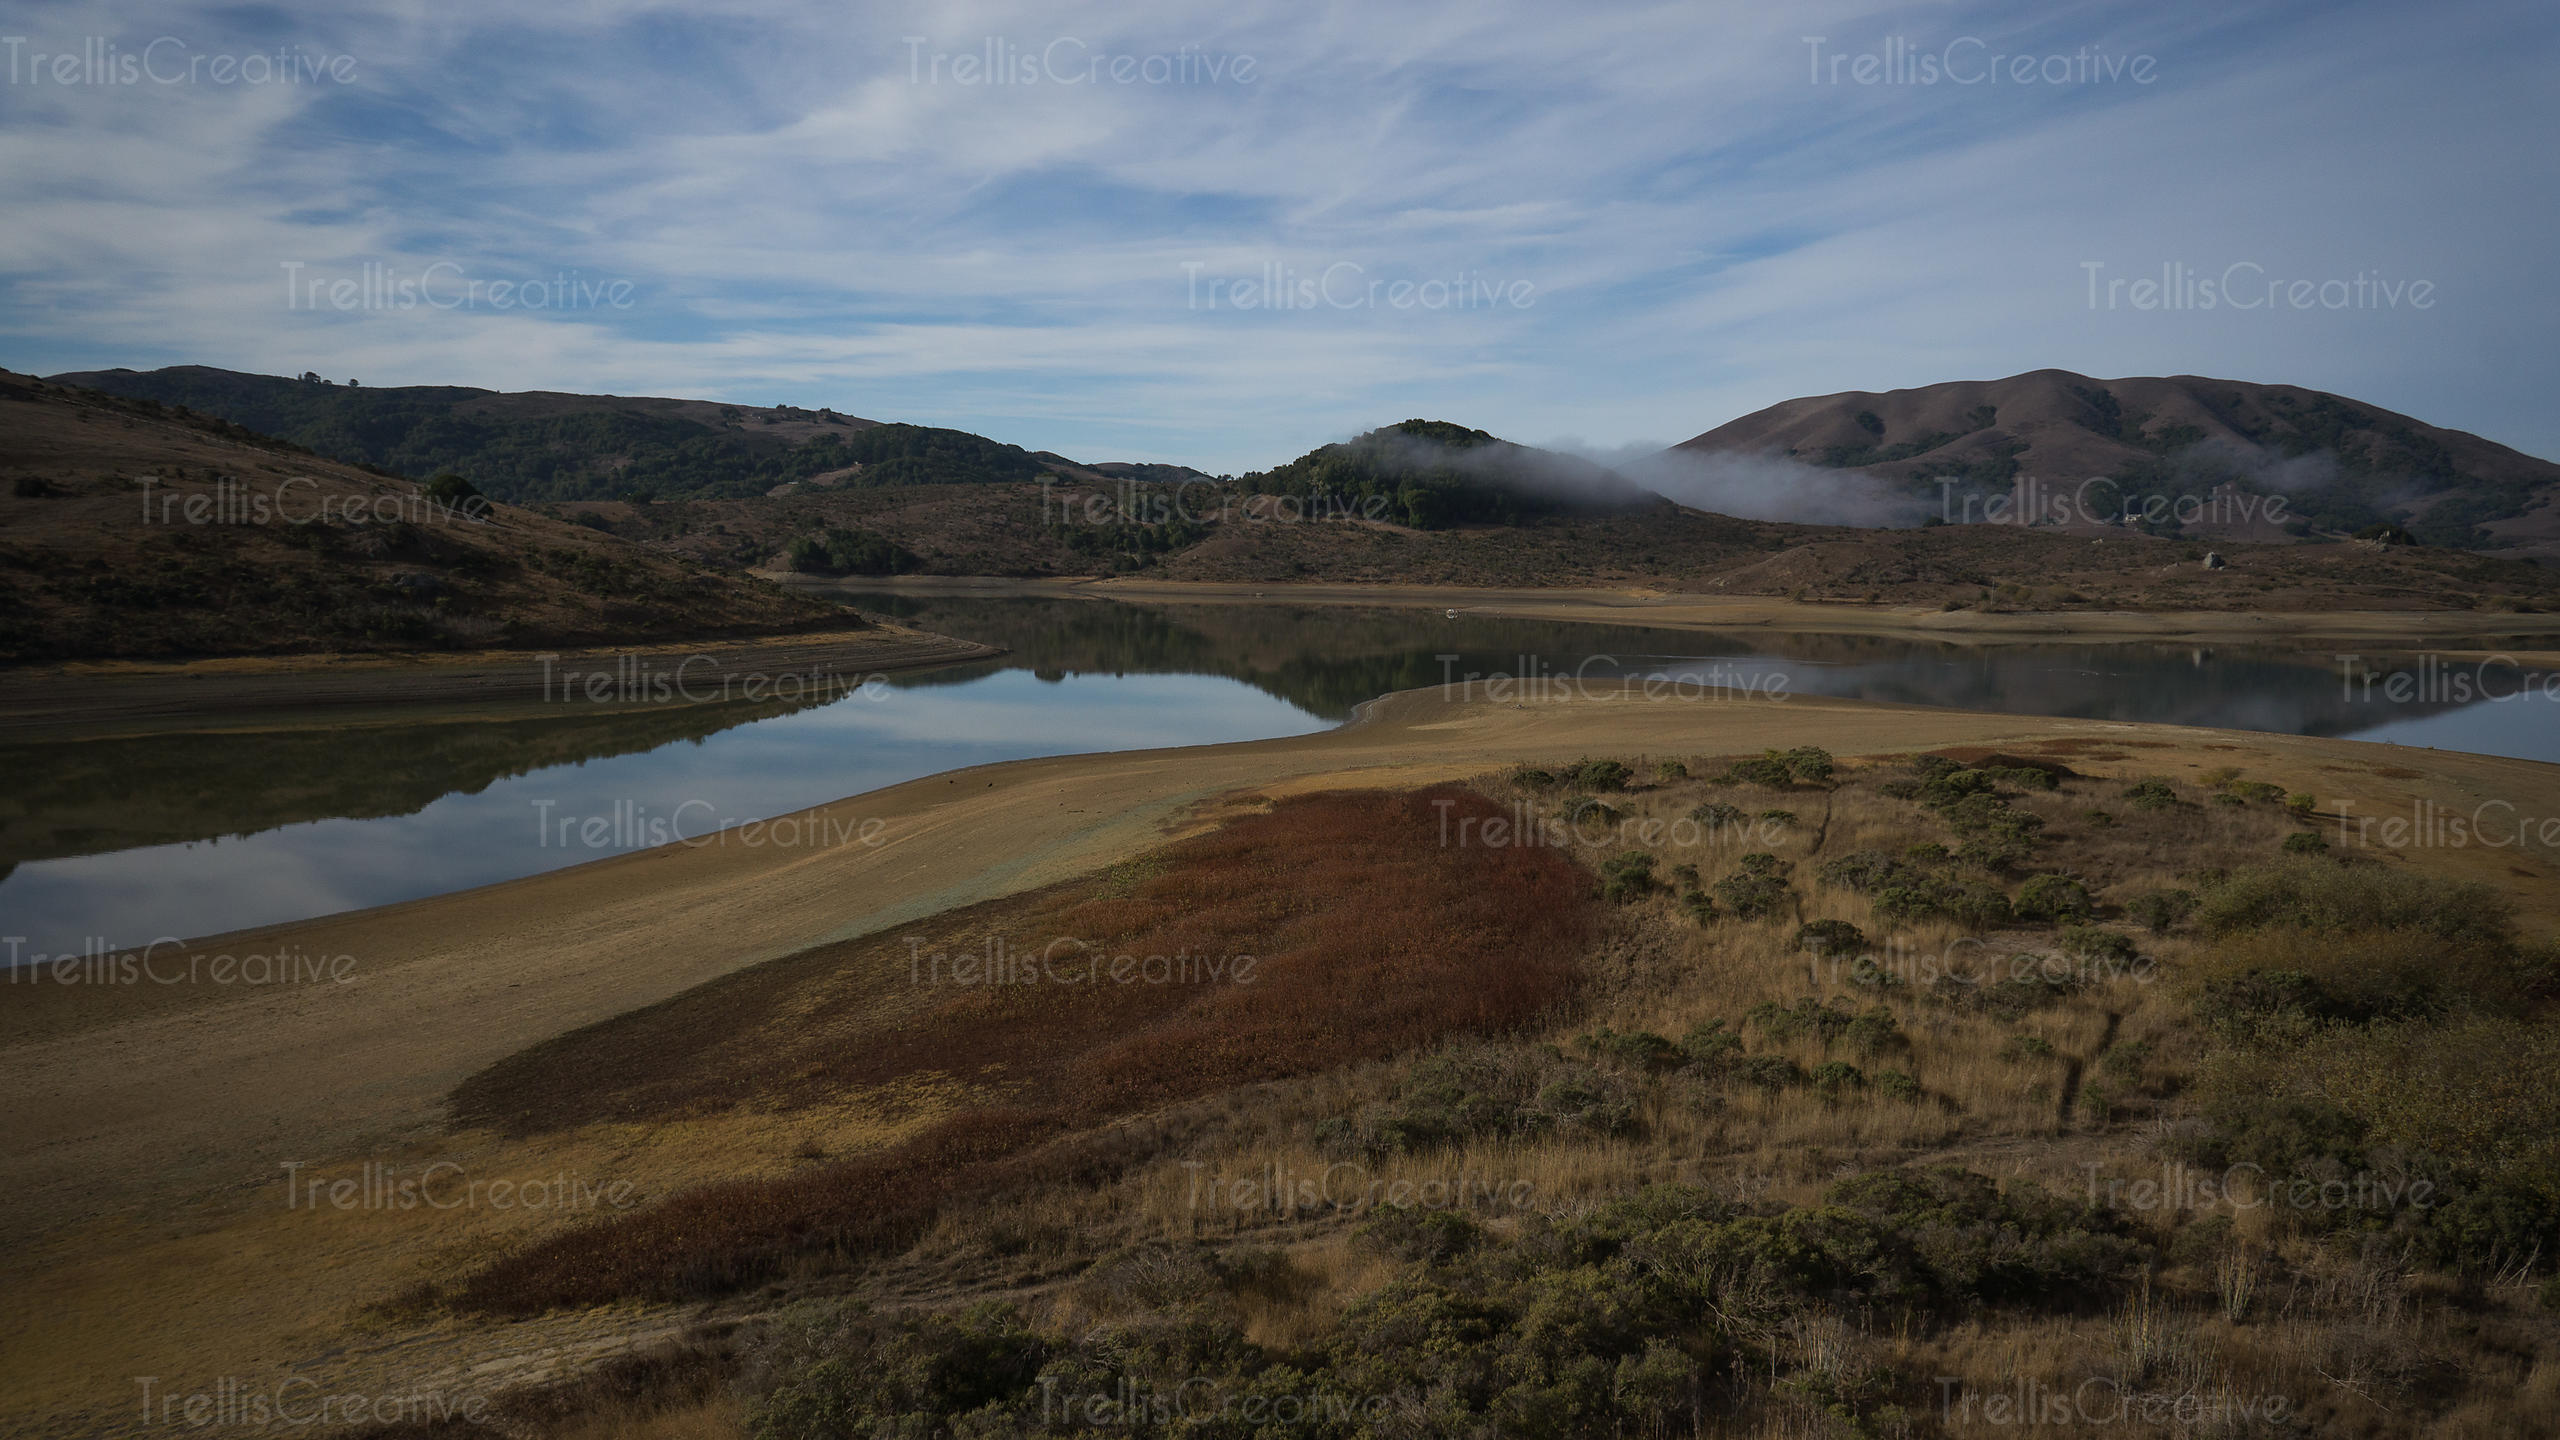 Aerial view of Nicasio Reservoir in Point Reyes National Seashore